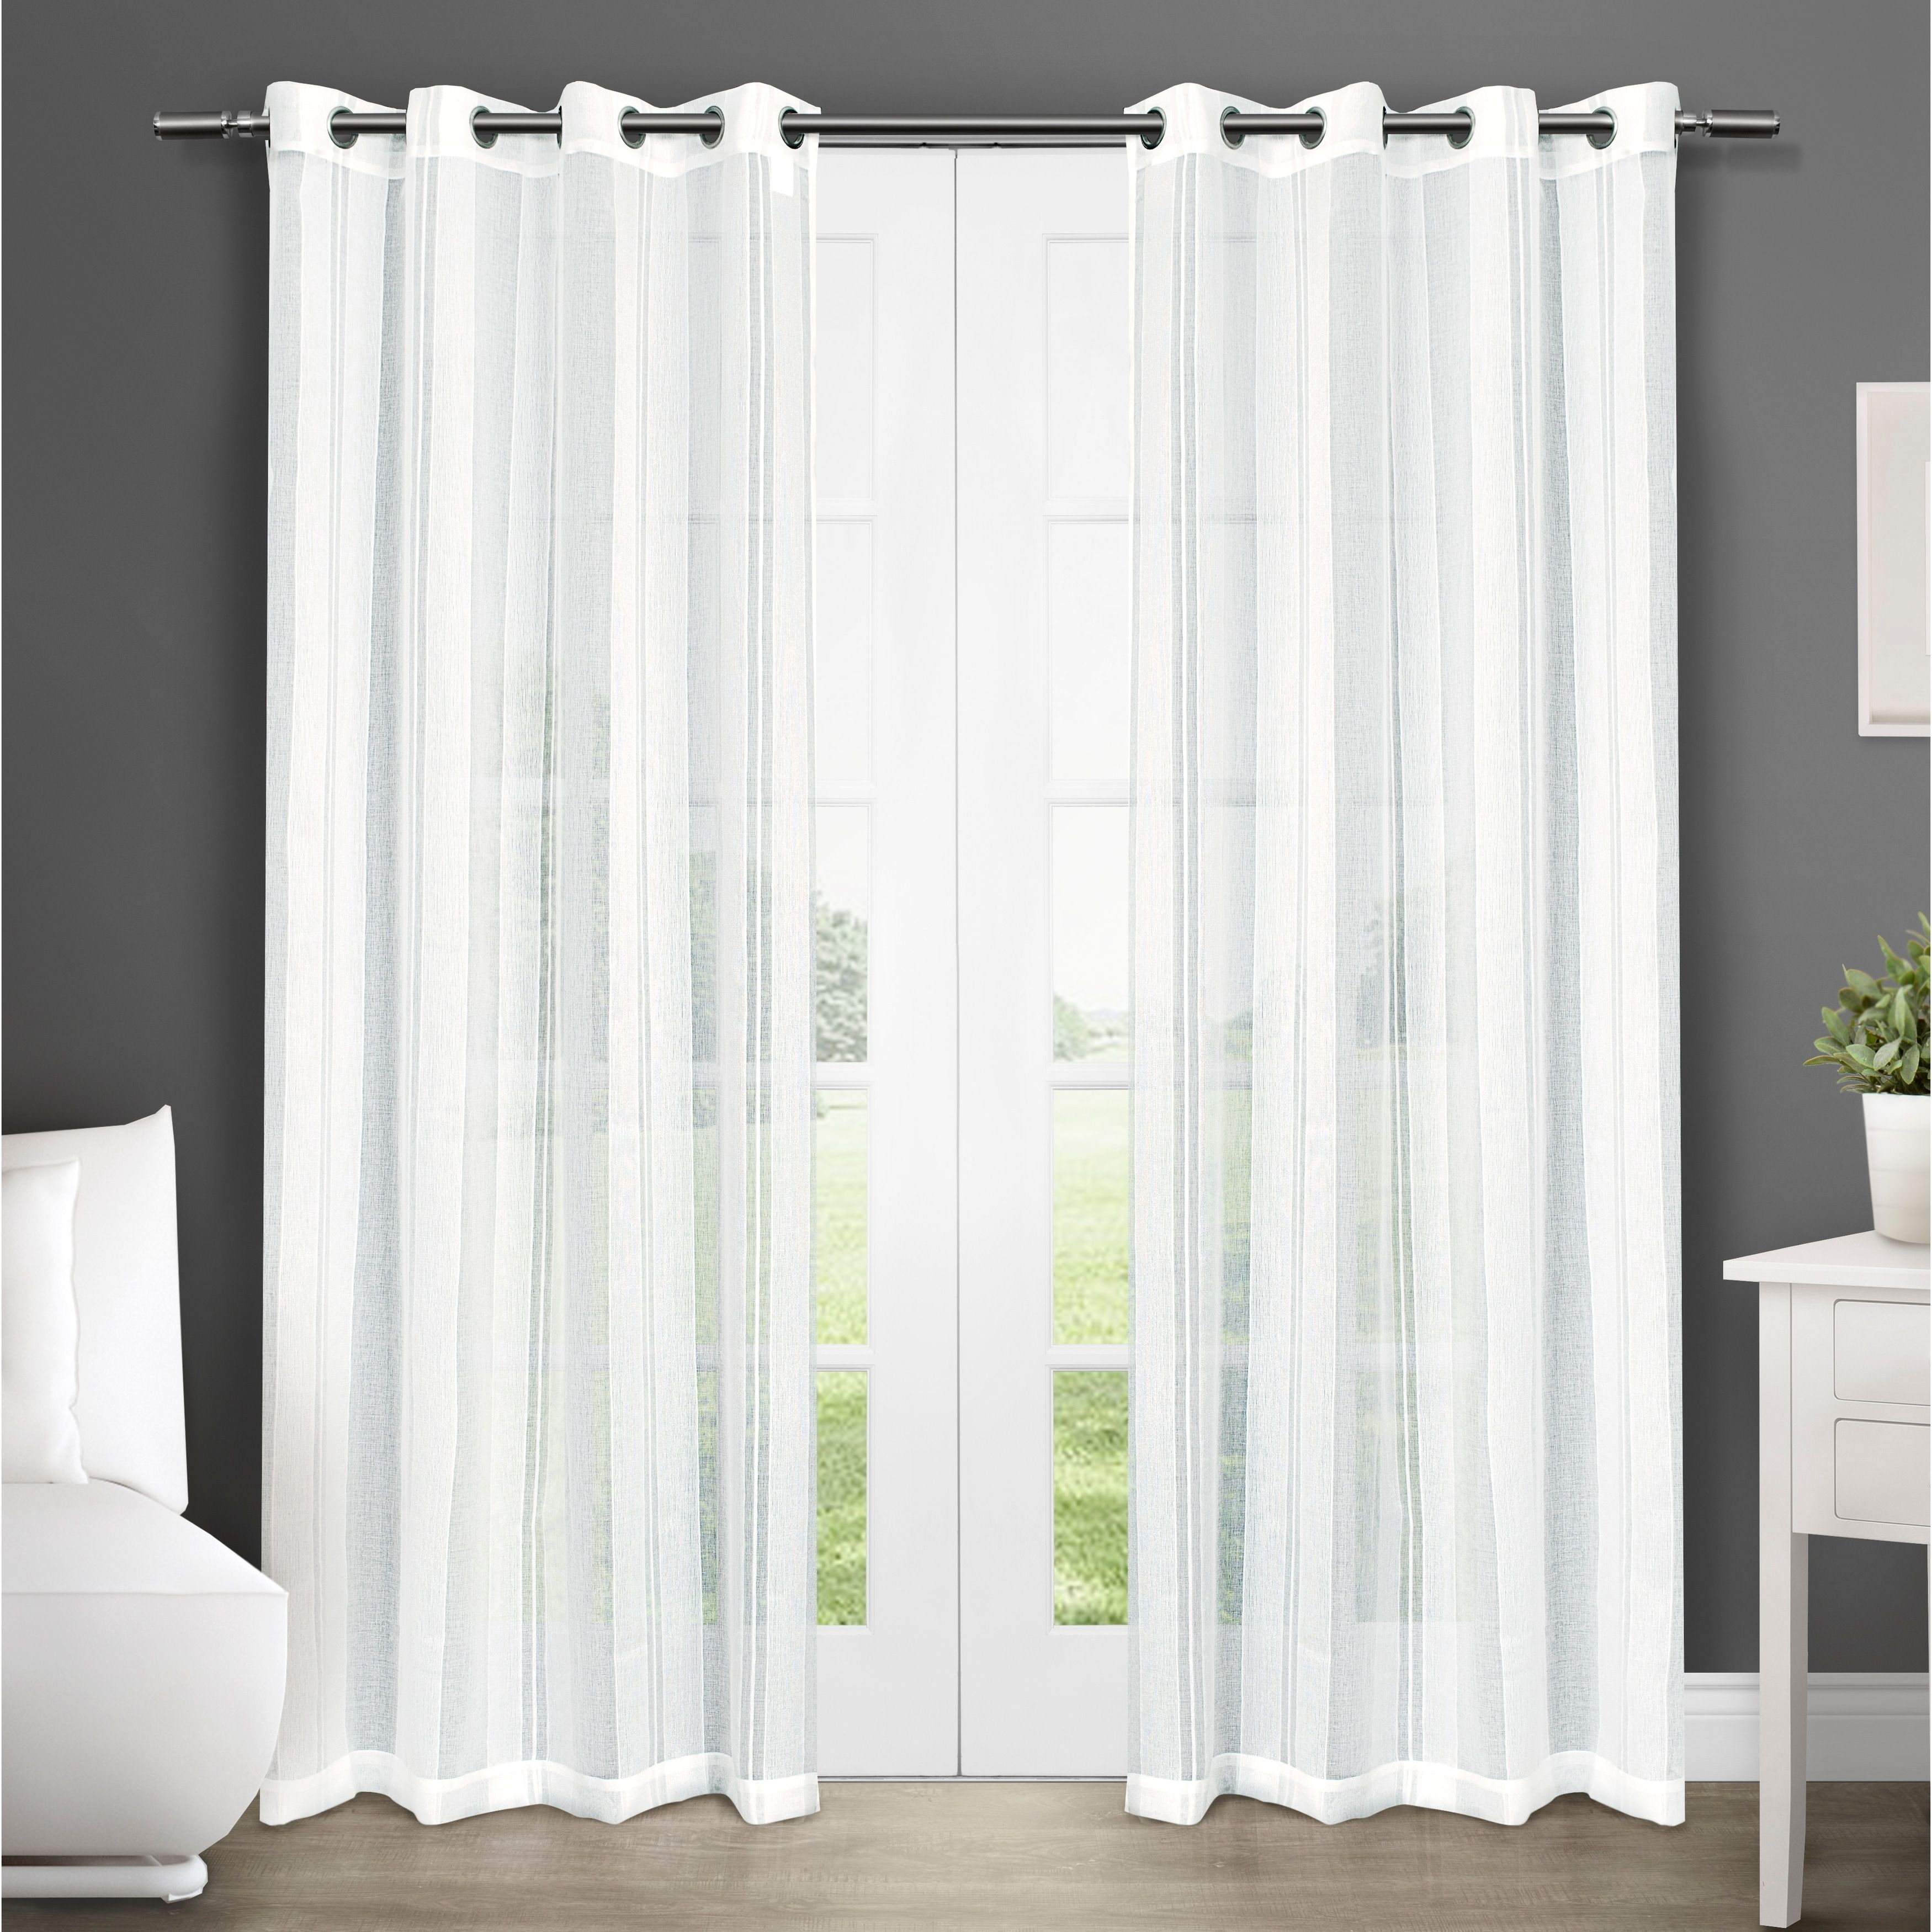 Ati Home Sheer Grommet Top Curtain Panel Pair 50x108 108 Inches